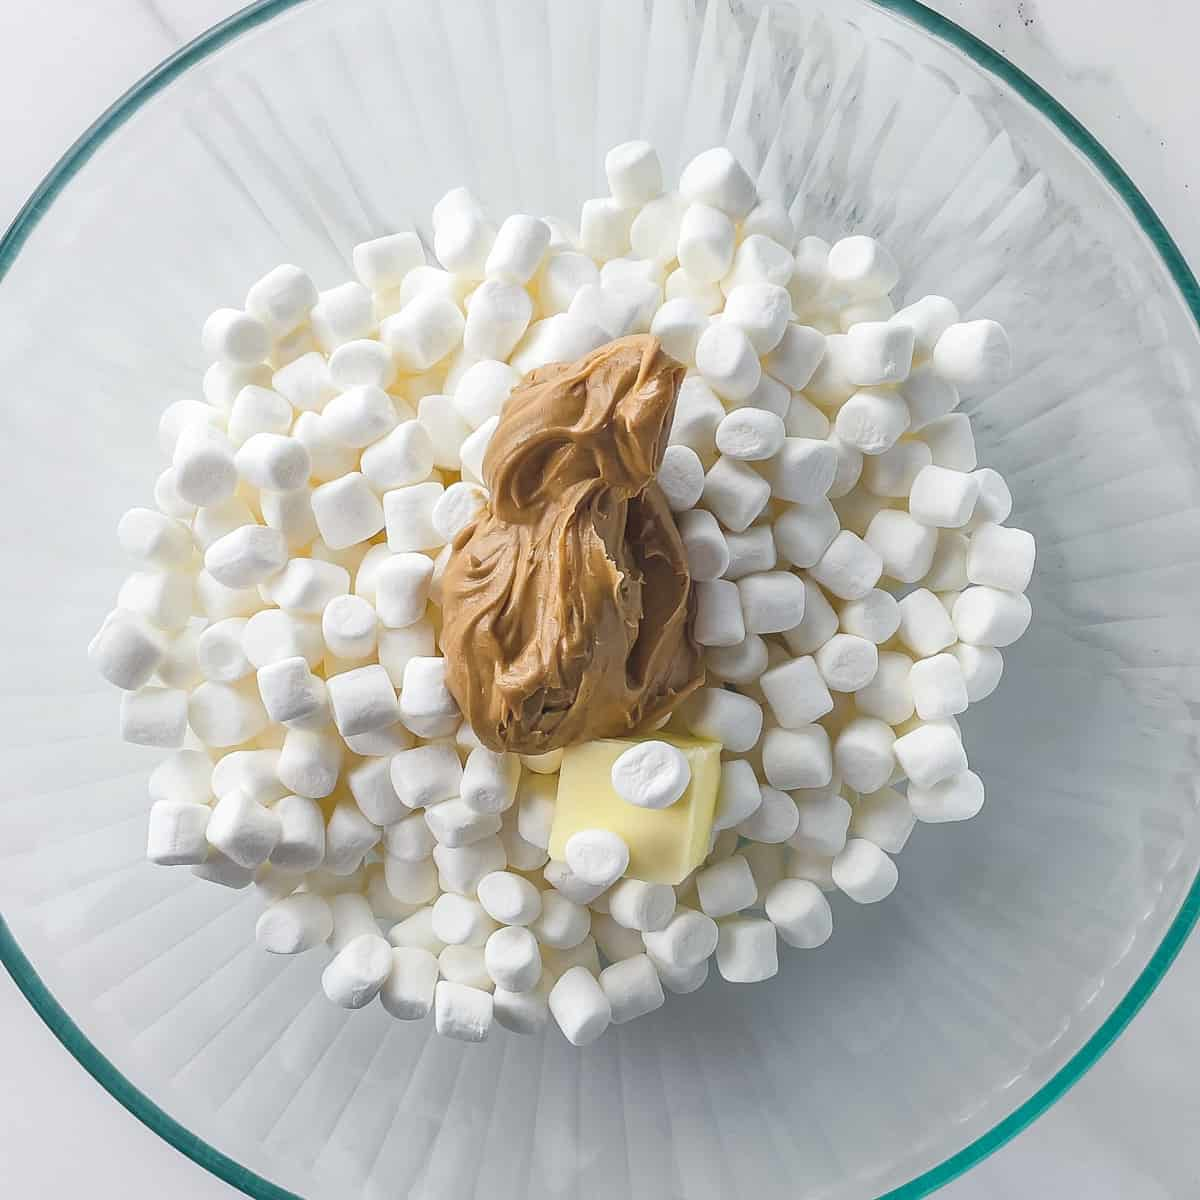 marshmallows, peanut butter, and butter in a glass mixing bowl